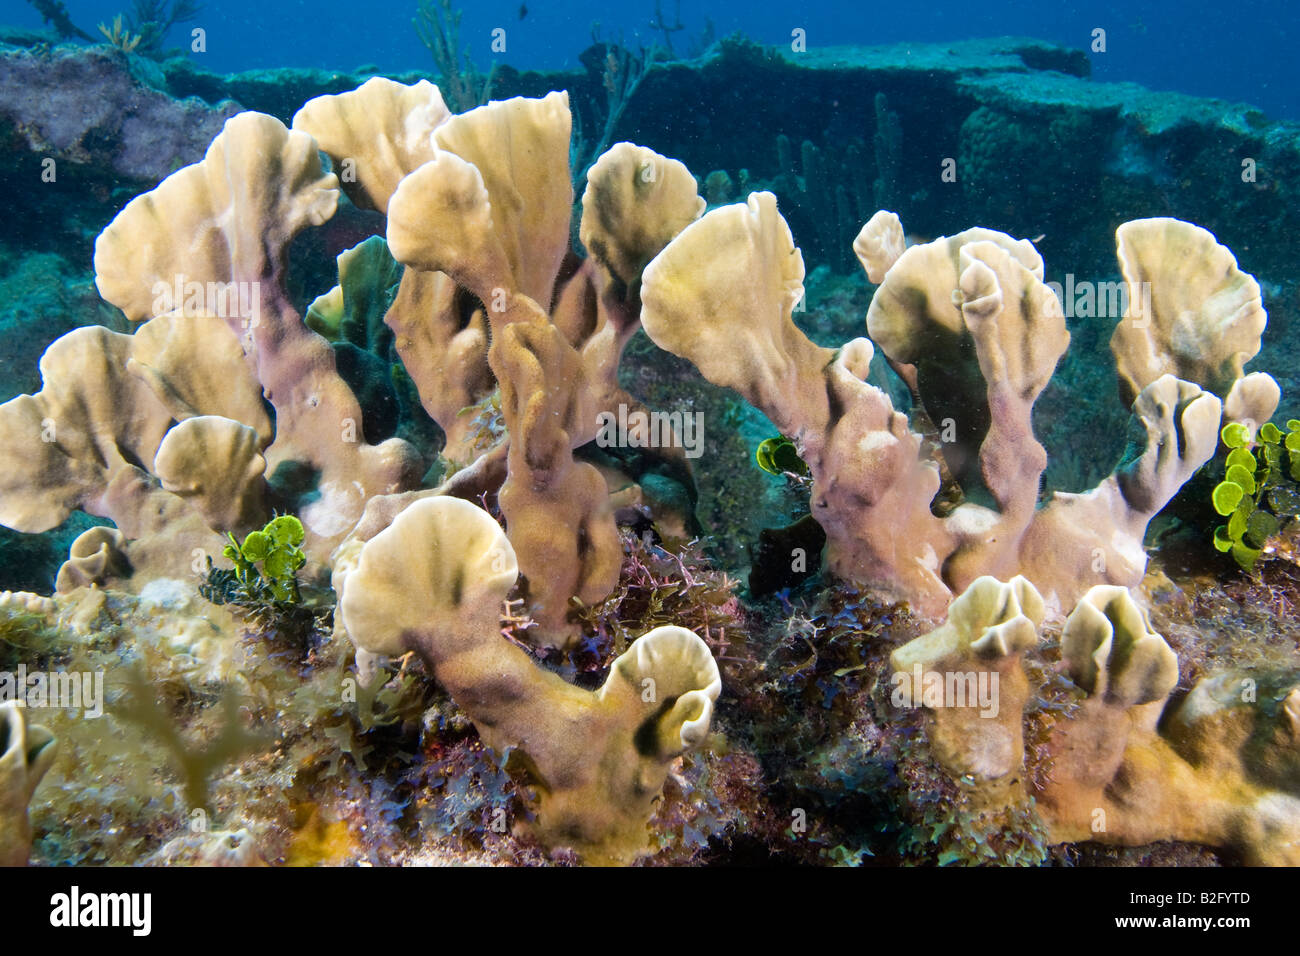 Blade Fire Coral growing on a shipwreck Florida Keys - Stock Image